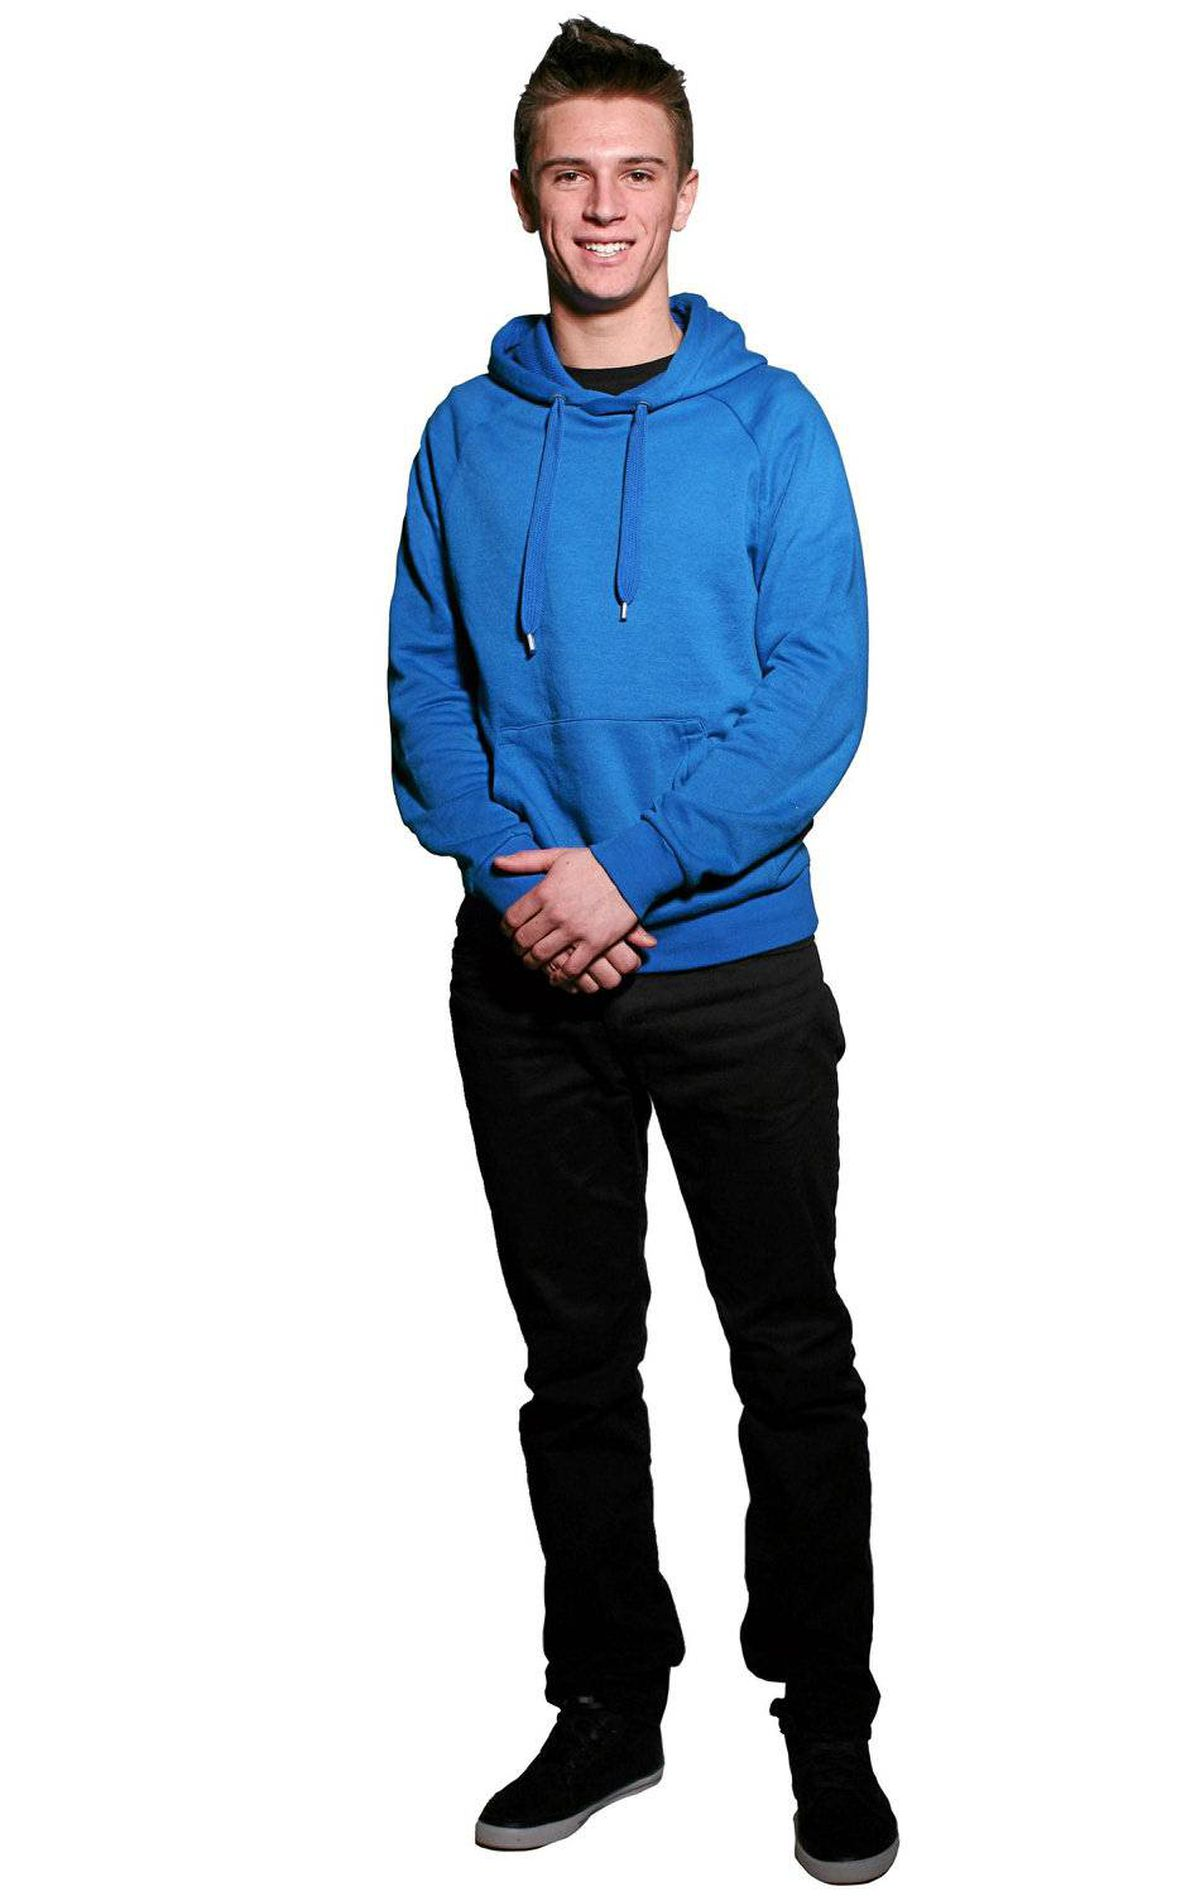 Paul De Sadeleer, 17, John McCrae Secondary School, Ottawa 'I would be dishonest if I'm saying when you see a girl on a magazine and she's very good-looking, you don't wish there was someone like that. ... [But] I hope I would never put that kind of pressure on a girl.'